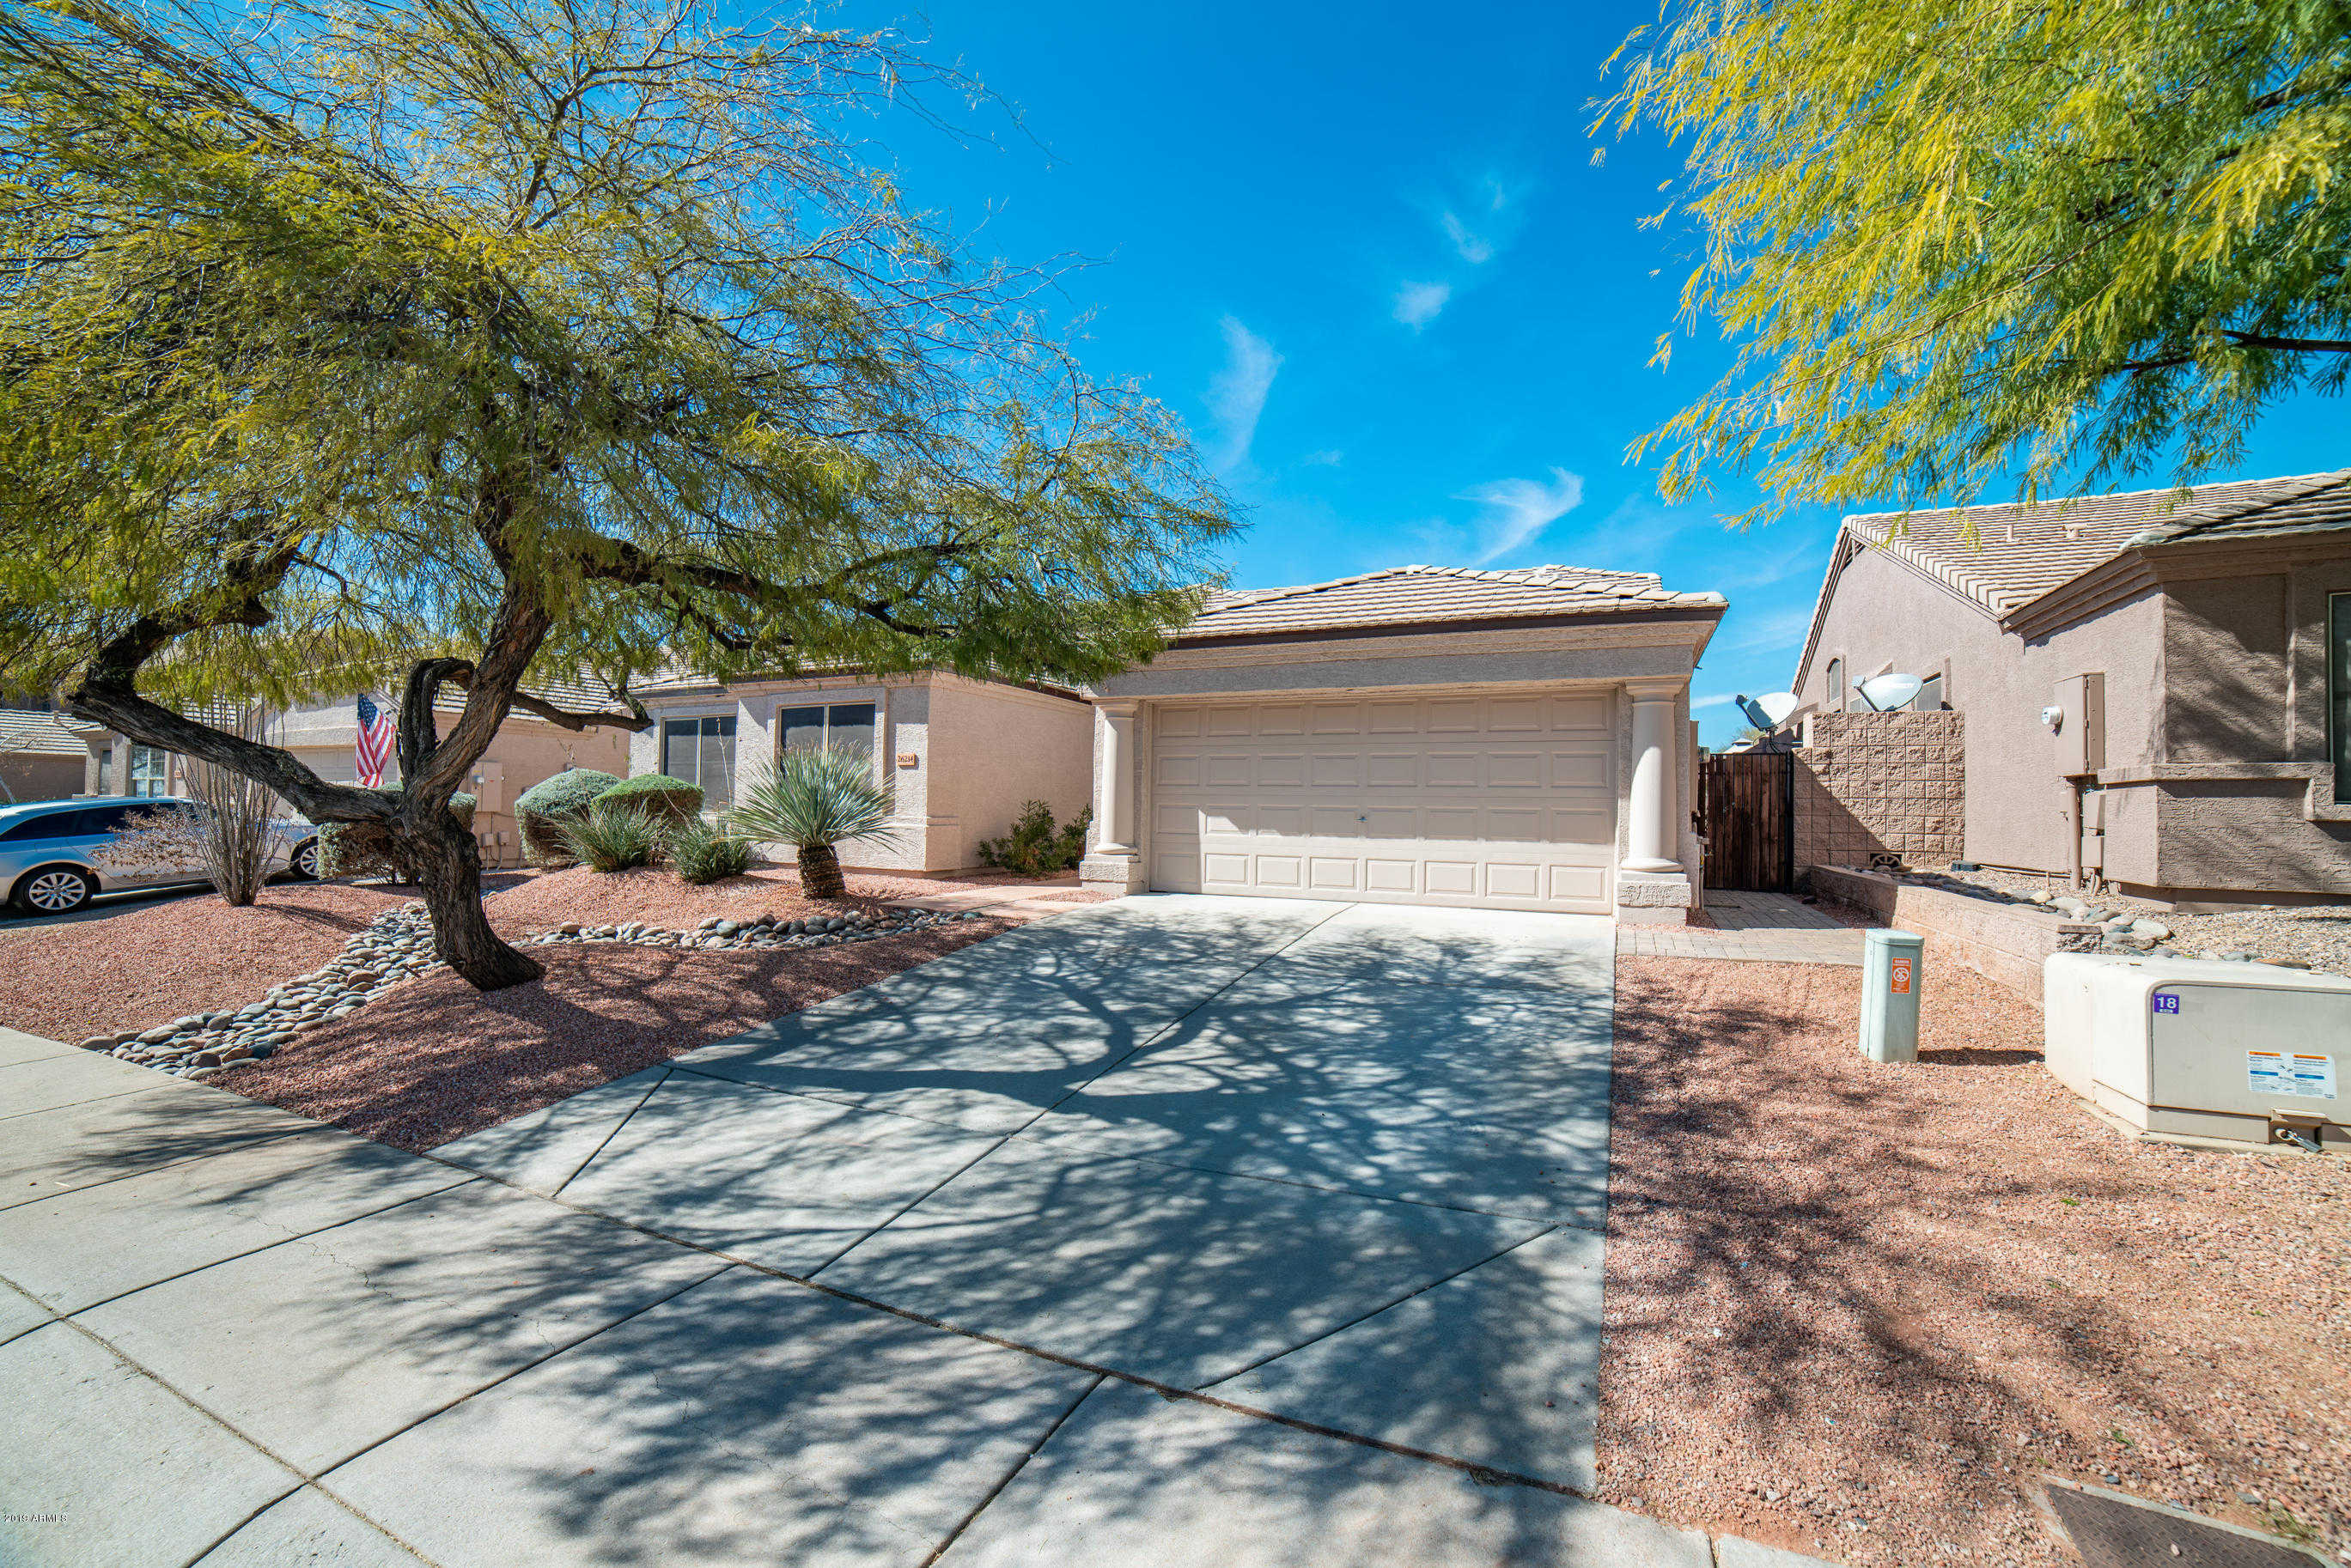 $453,000 - 3Br/2Ba - Home for Sale in Tatum Highlands Parcel 19, Phoenix